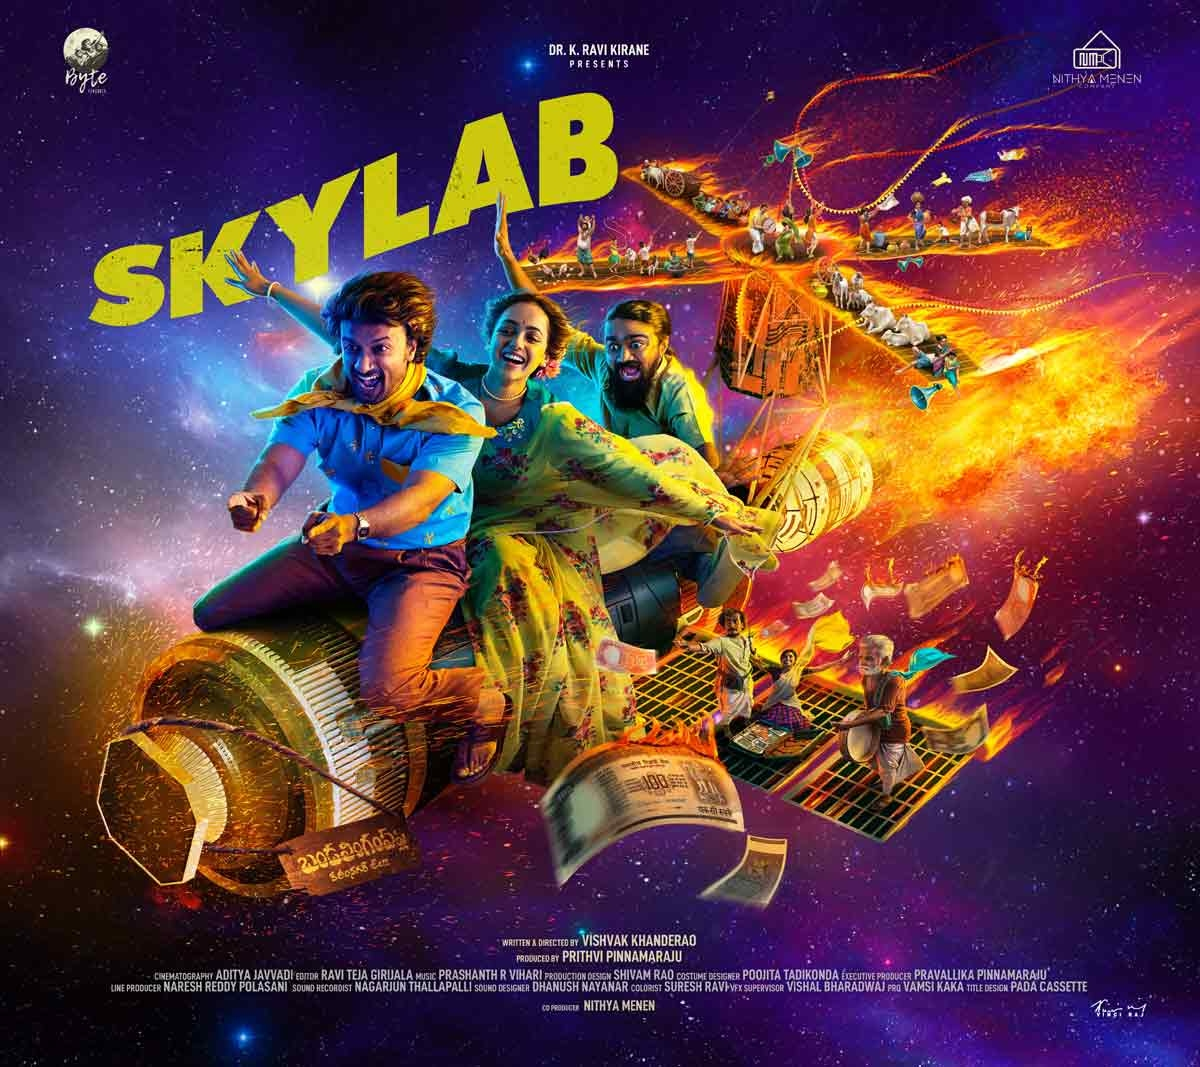 Nithya Menen is excited about Skylab